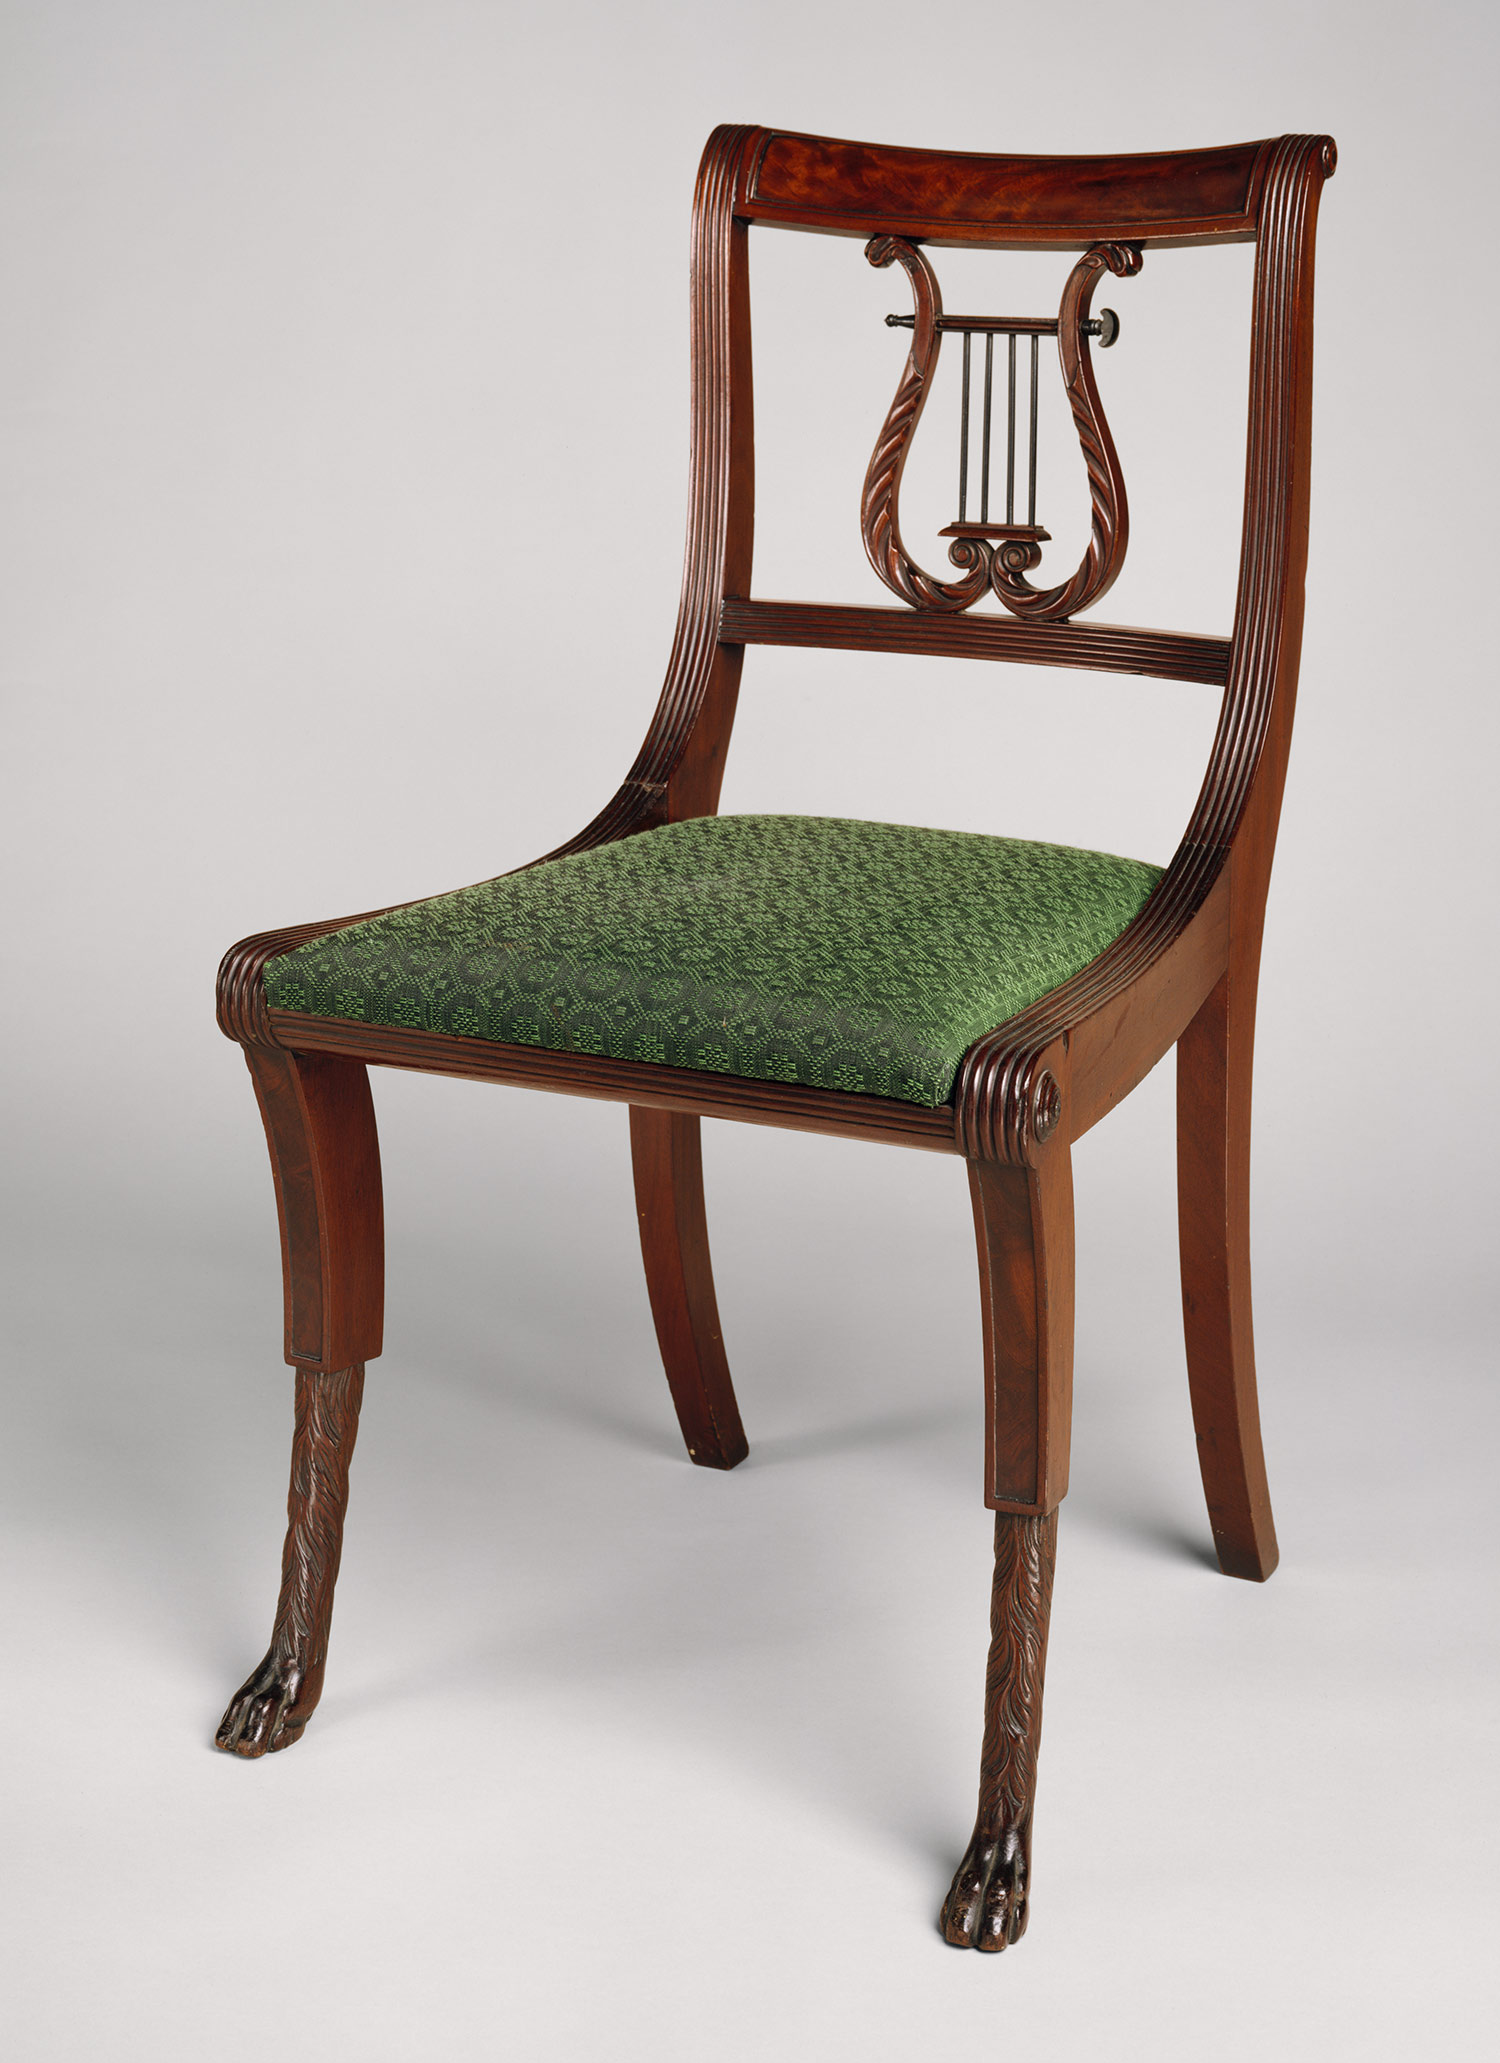 DUNCAN PHYFE LYRE BACK DINING CHAIR Chair Pads amp Cushions : h2651882 from chaileather.net size 1500 x 2063 jpeg 336kB